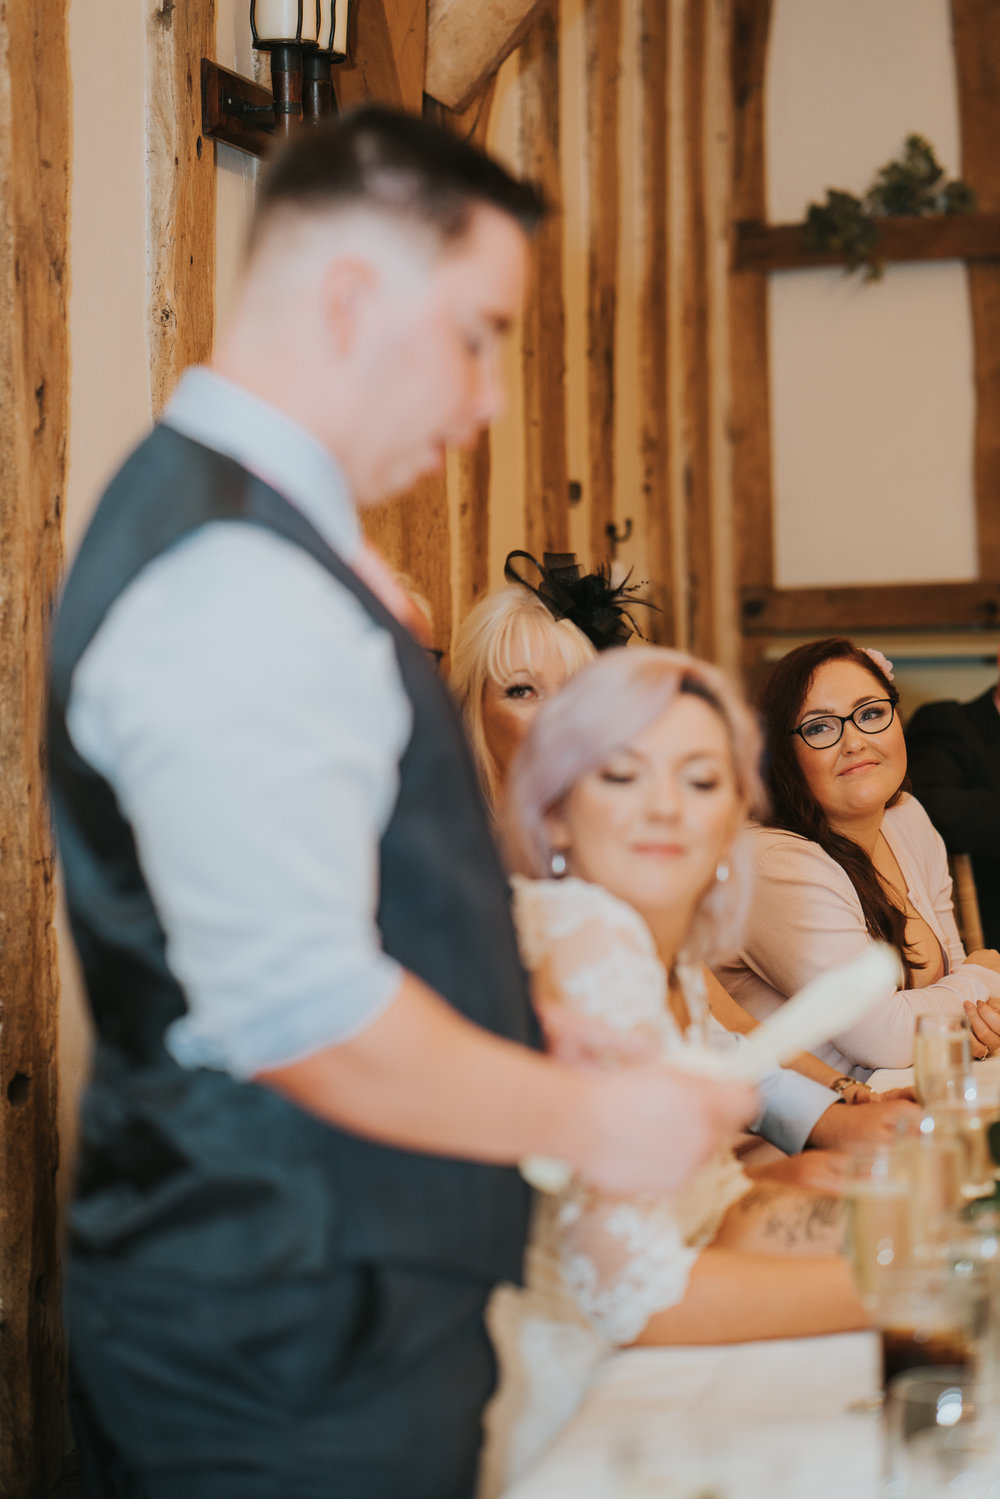 rhia-james-rustic-crabbs-barn-vintage-50s-retro-wedding-grace-elizabeth-colchester-essex-alternative-relaxed-wedding-family-photography-devon-suffolk-norfolk-essex (124 of 138).jpg